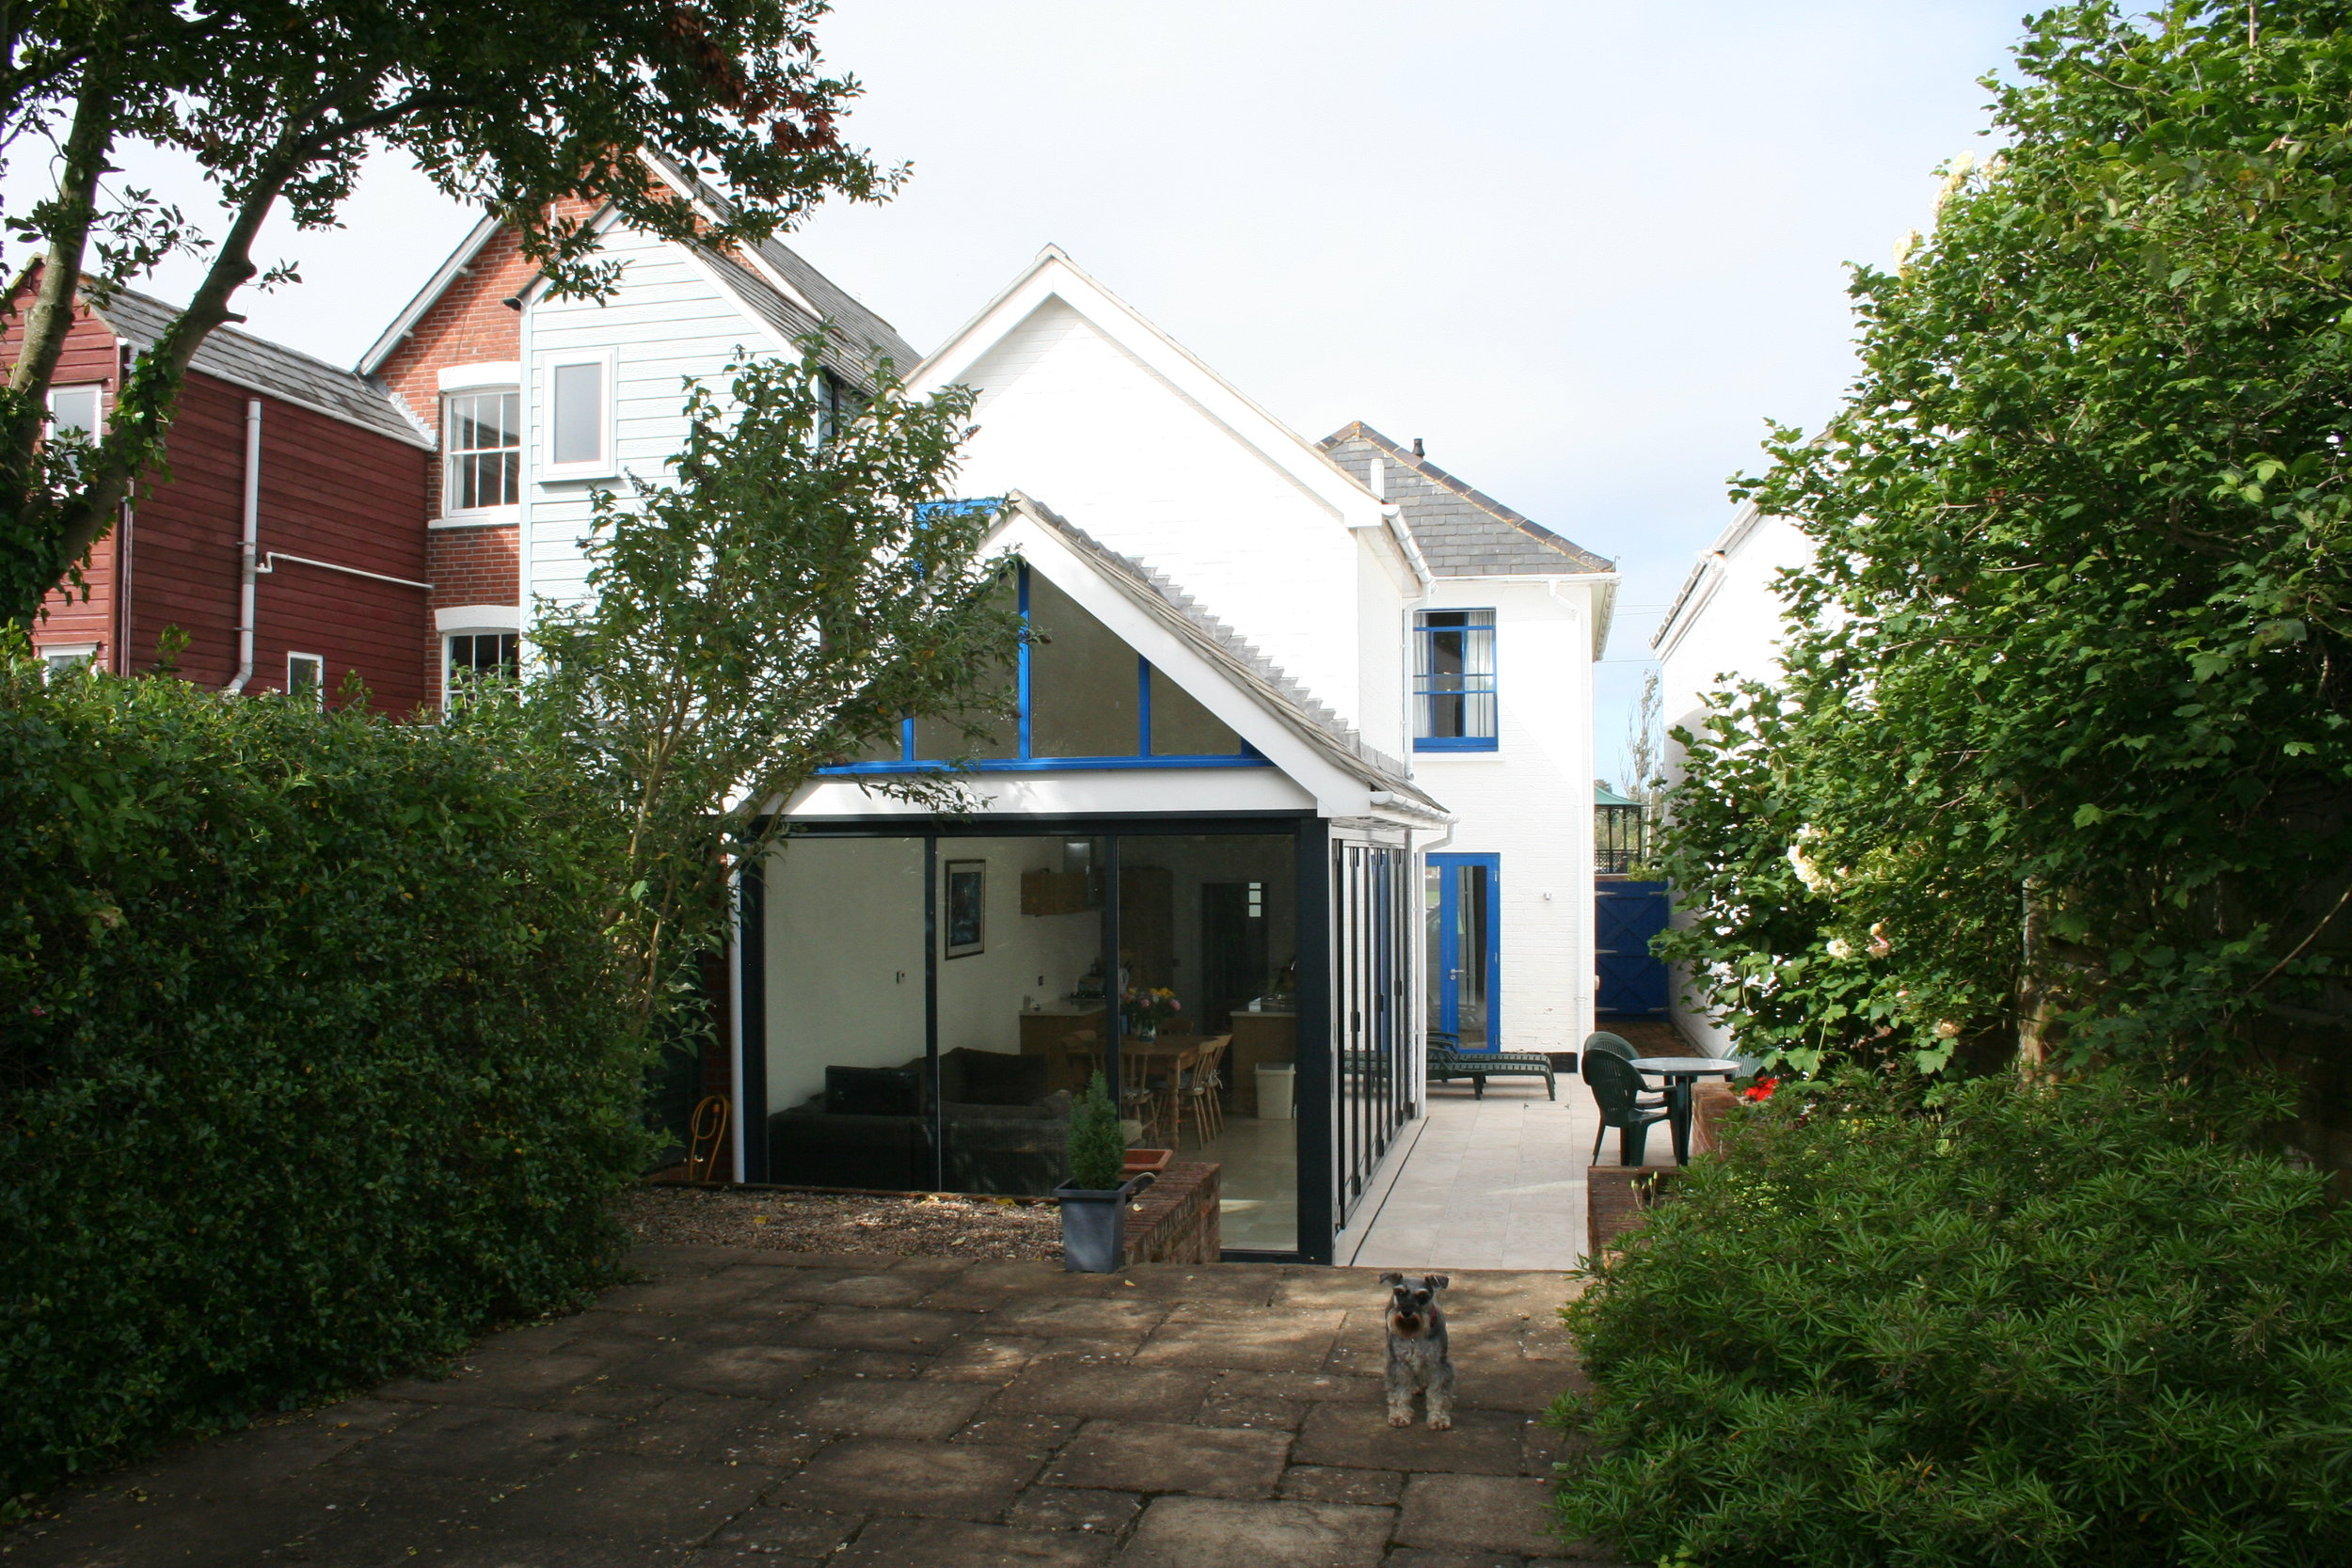 Domestic Extension and alterations